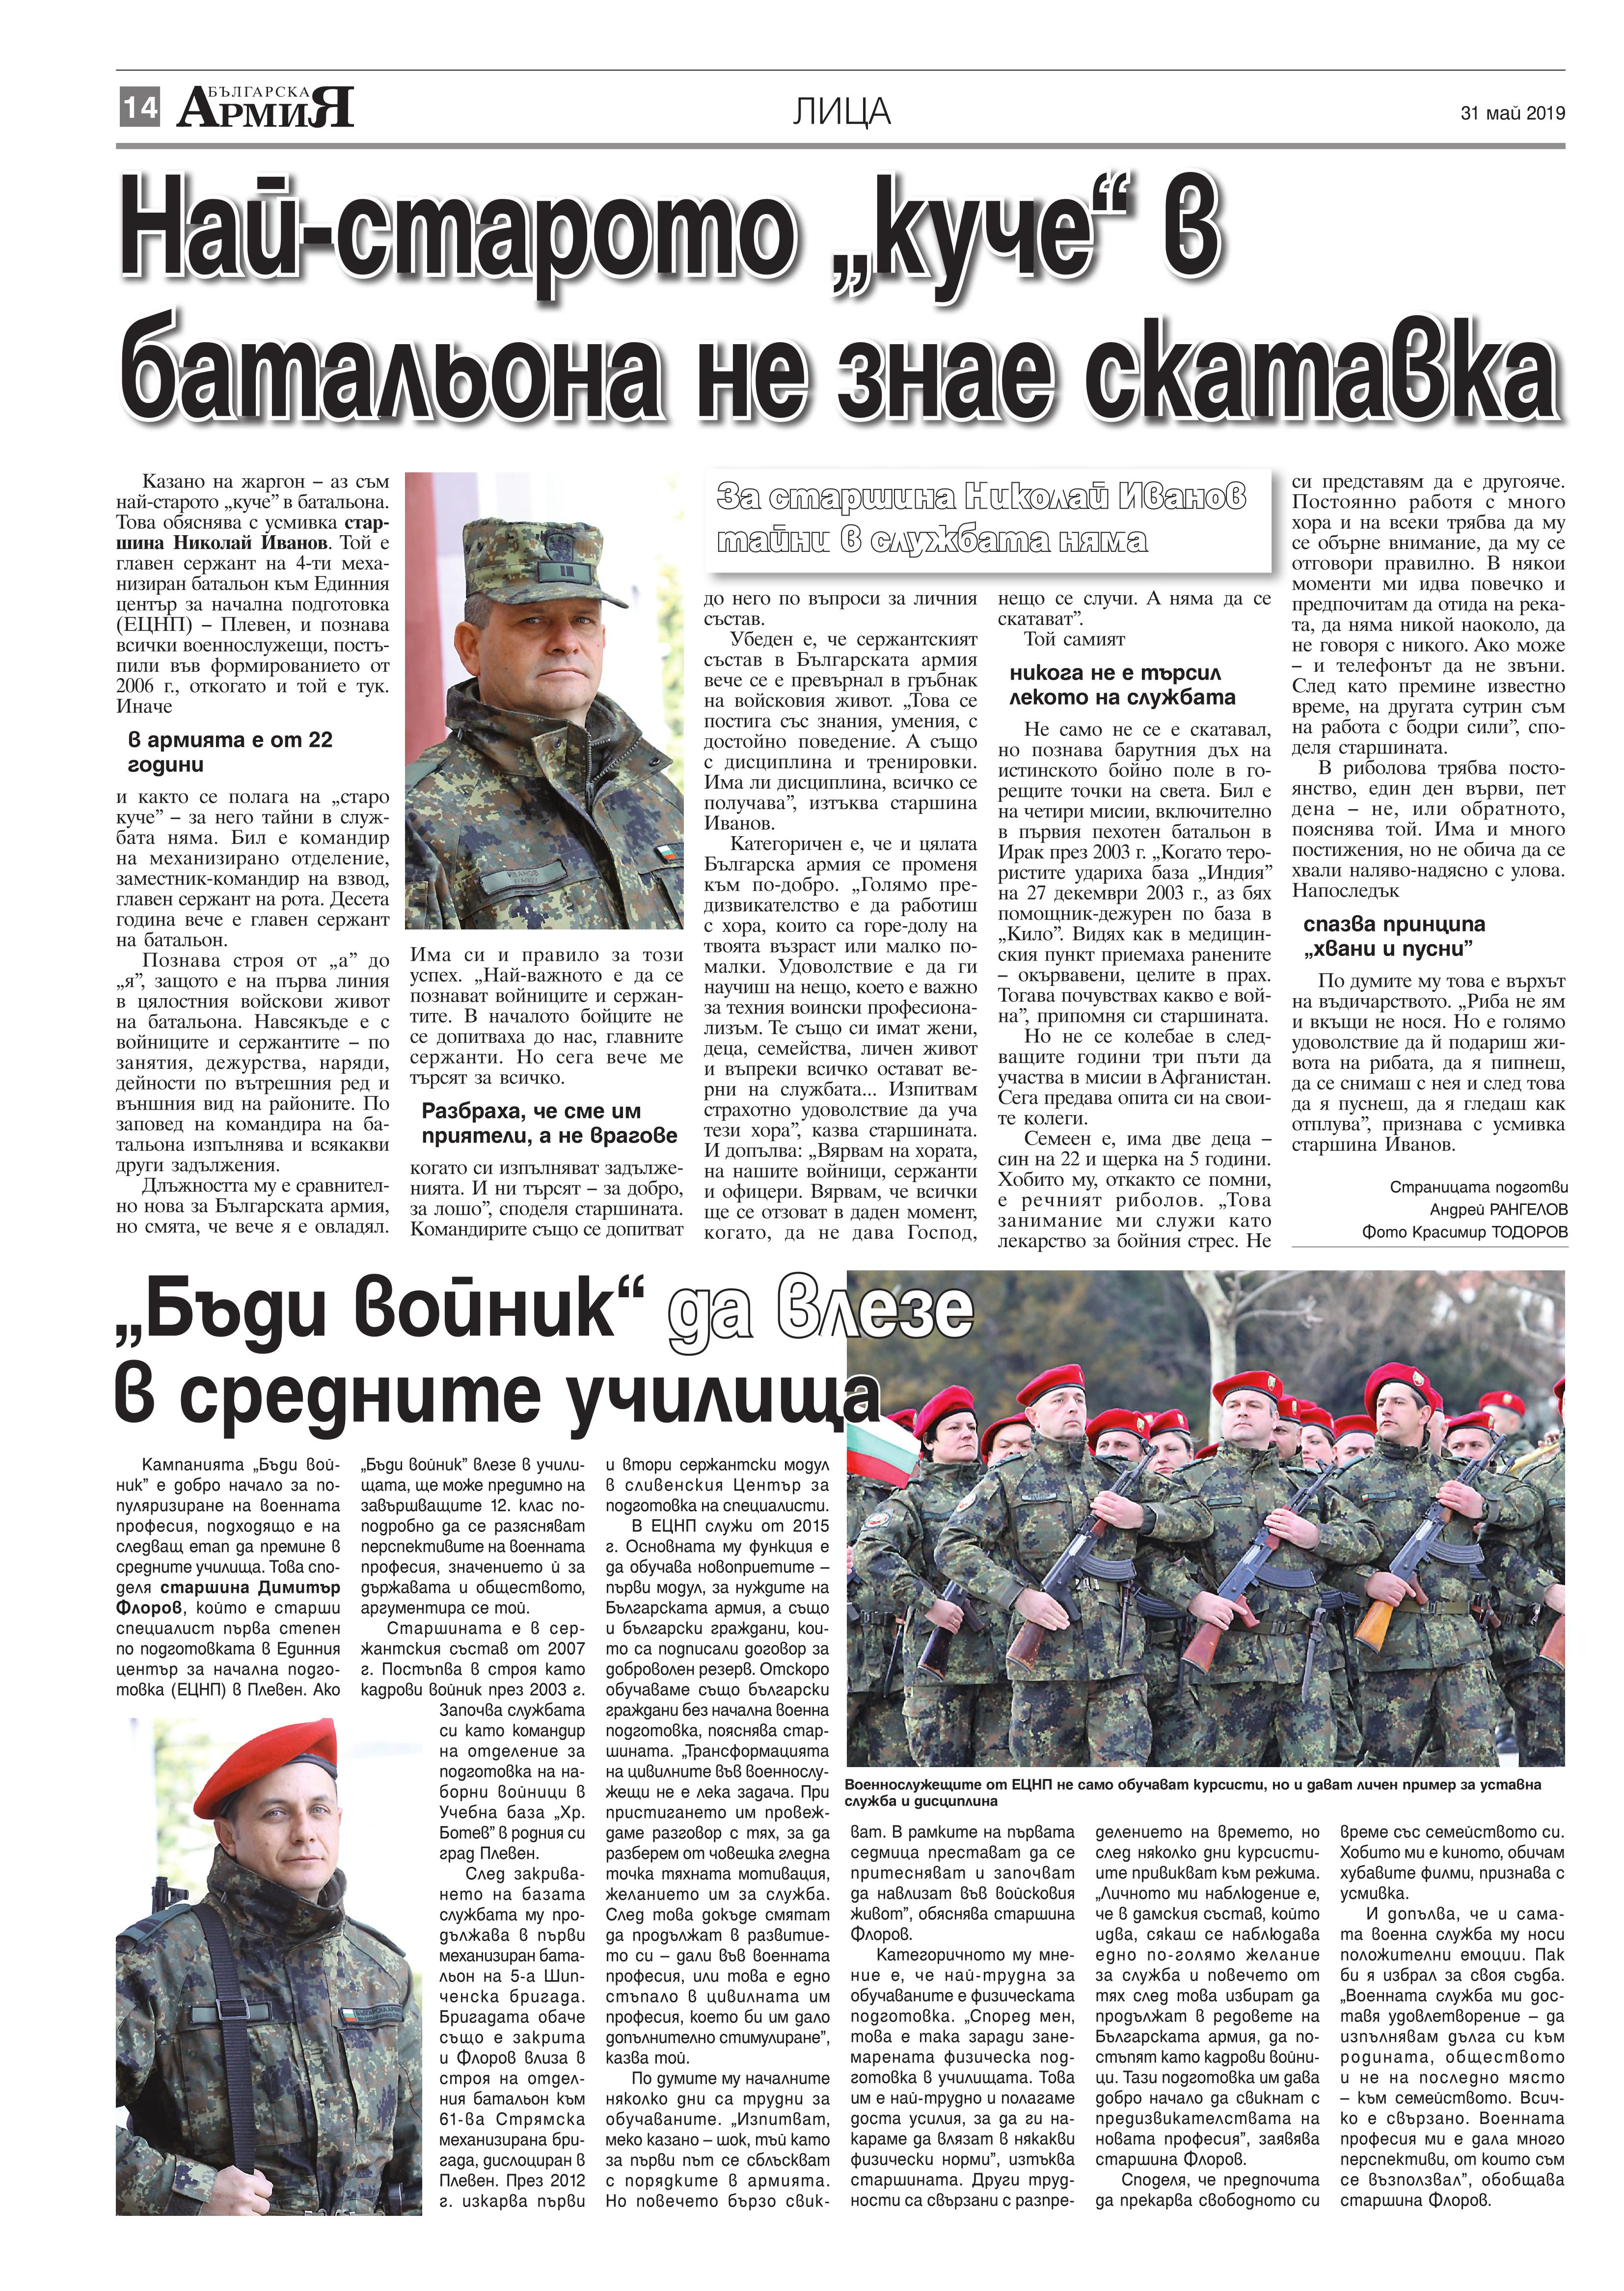 https://armymedia.bg/wp-content/uploads/2015/06/14.page1_-97.jpg